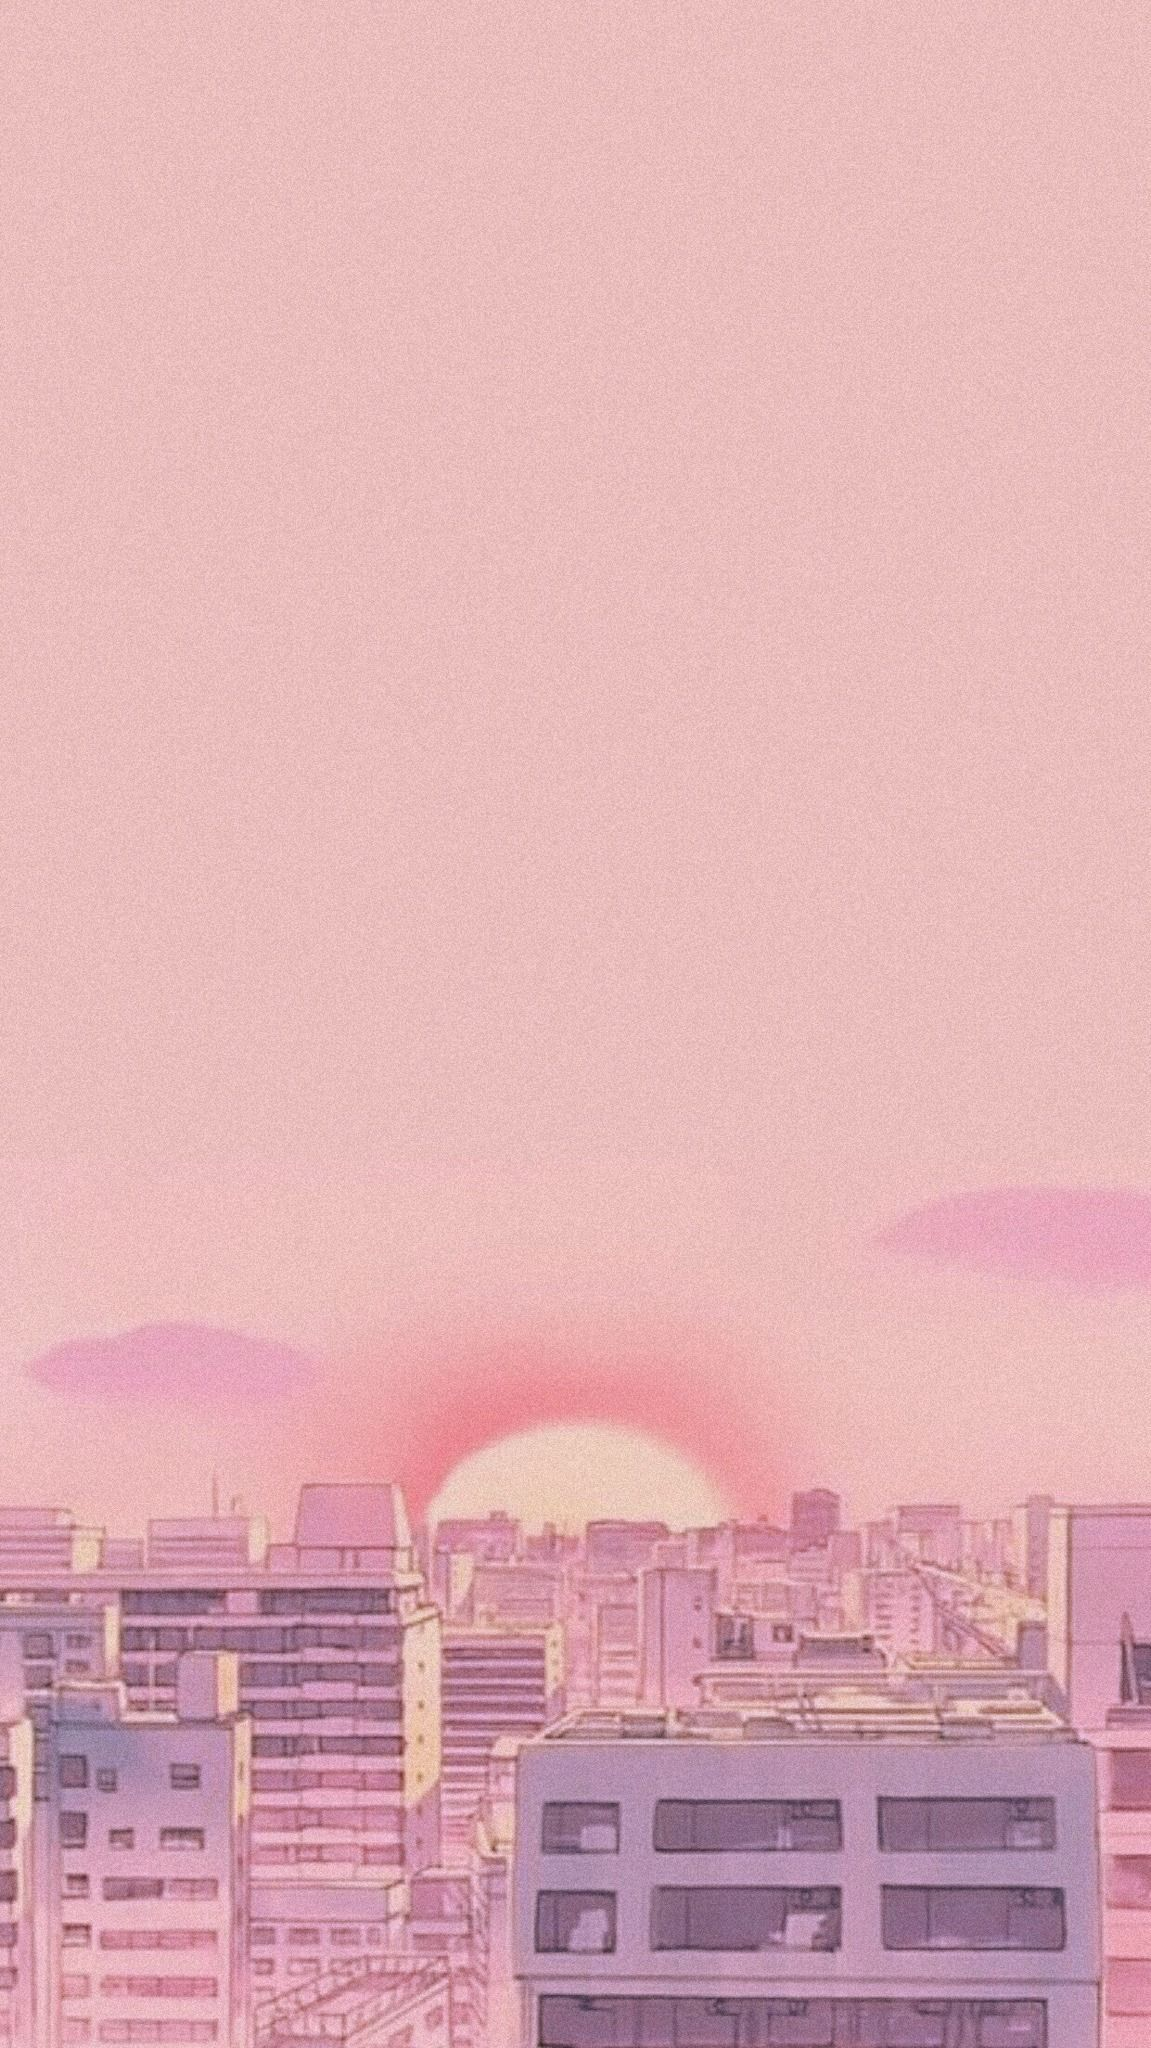 90s Anime Aesthetic Wallpaper In 2020 Anime Wallpaper Iphone Kawaii Wallpaper Aesthetic Pastel Wallpaper